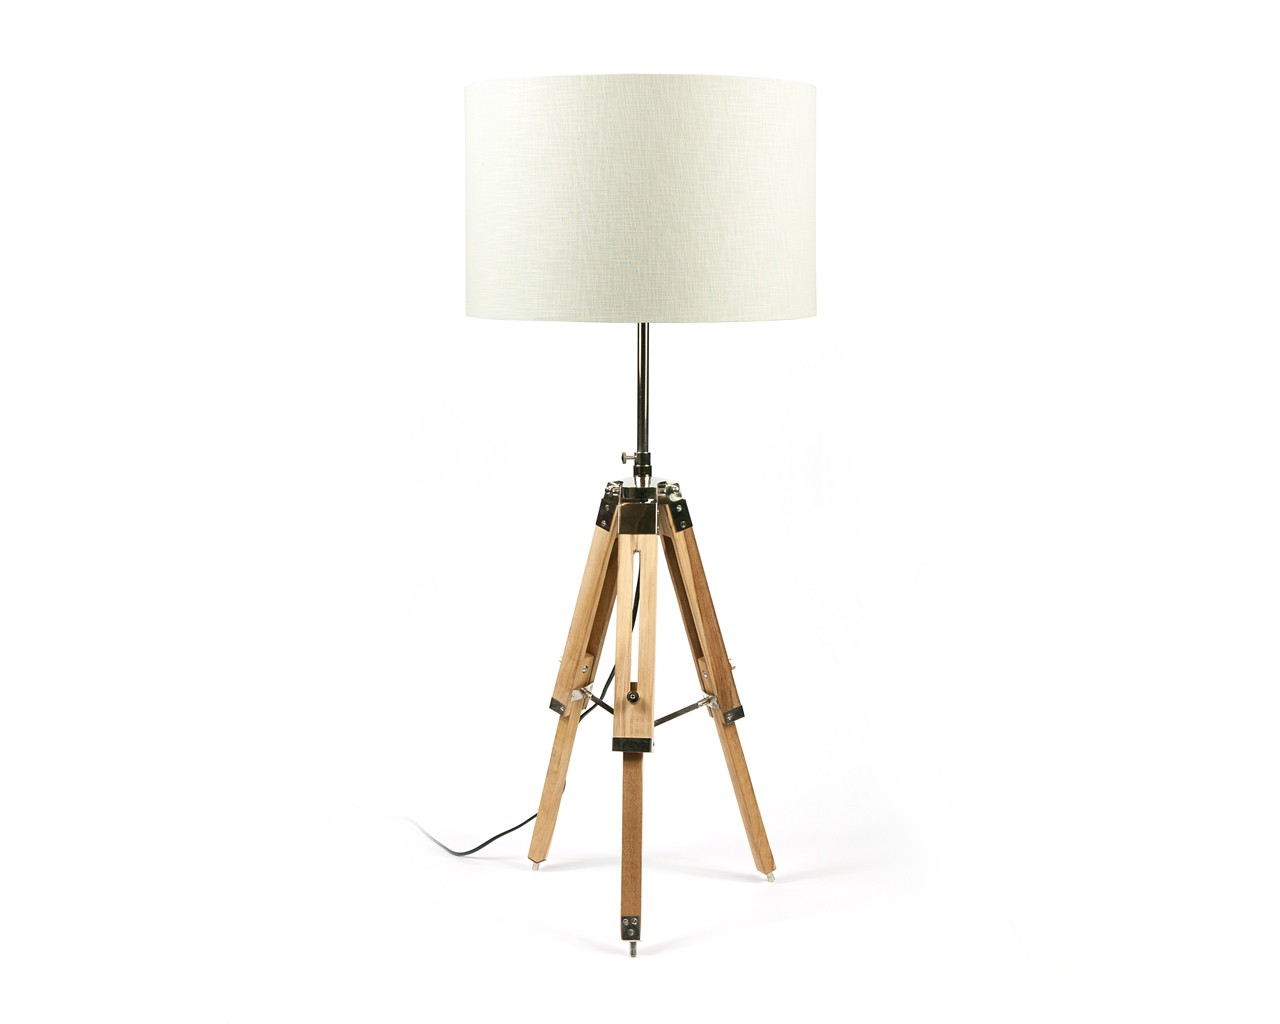 Awesome Tripod Lamp for Interior Lighting Ideas: Tripod Lamp | Crate Flooring | Antique Brass Lamps